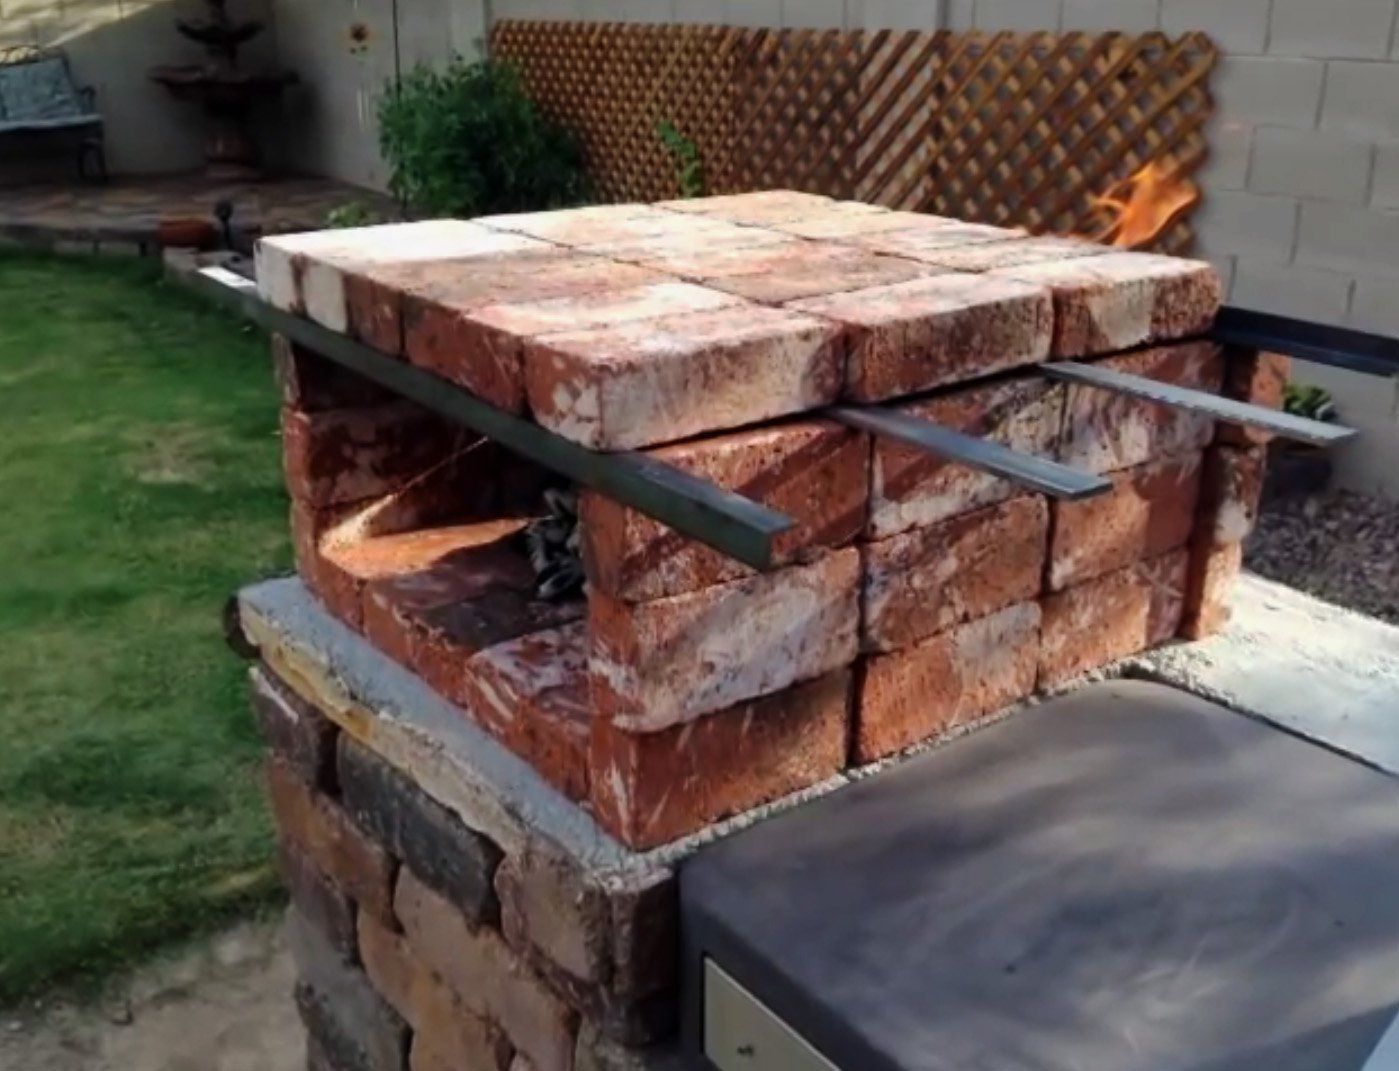 Garden Design With Outdoor Pizza Oven Brick Outdoor Furniture Design And Ideas With How To Plant Backyard Pizza Oven Brick Pizza Oven Outdoor Brick Pizza Oven